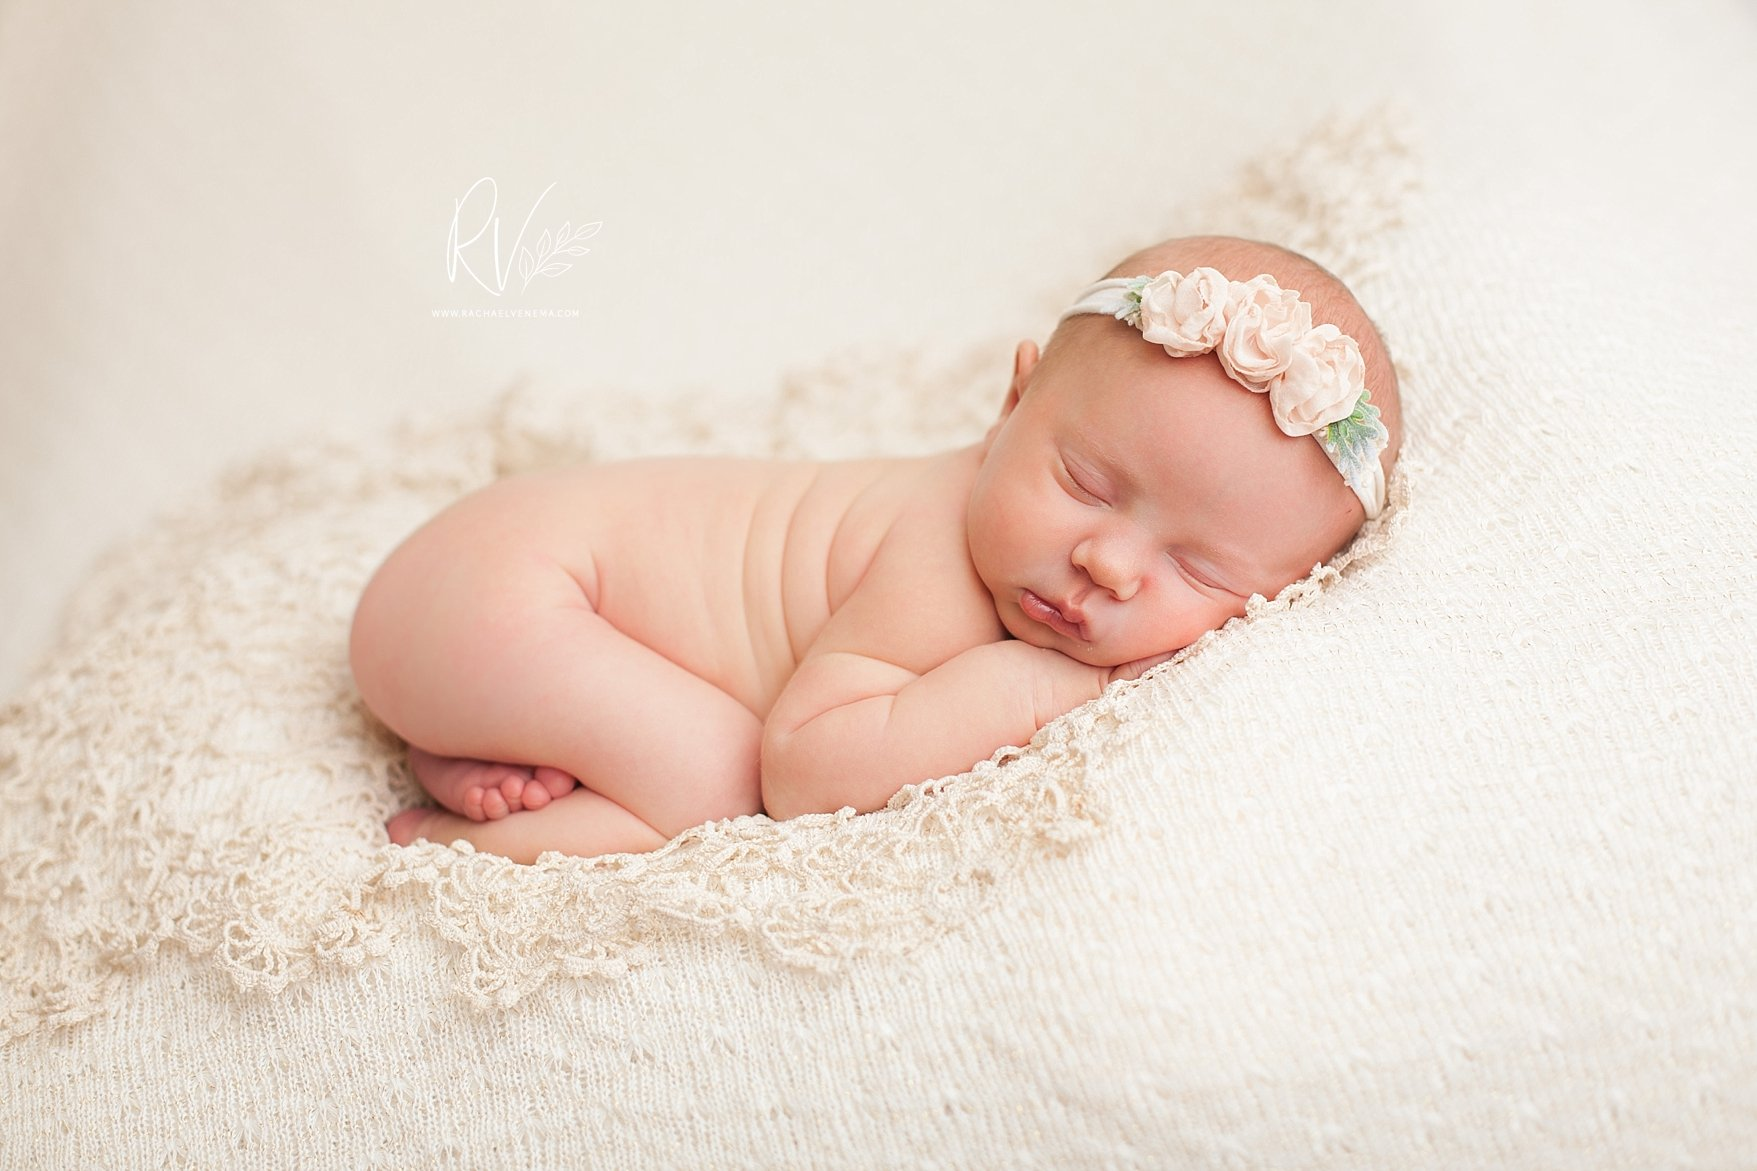 Central Valley Newborn Photographer, Ripon CA, Ripon CA Photographer, Central Valley Photography, Central Valley Newborns, Ripon CA Newborn Photographer, Ripon Newborn Photographer, Ripon California, Central Valley Newborns, San Joaquin Newborns, San Joaquin Photographer, Stanislaus Newborn Photographer, Stanislaus Photographer, Stanislaus County, San Joaquin County, Central Valley Hospital, Kaiser Permanente Hospital, Kaiser Hospital, Kaiser, Kaiser Permanente, Memorial Hospital, Memorial Hospital Modesto, Modesto Newborn Photographer, Manteca Photographer, Manteca Newborn Photographer, Modesto Newborn Photographer